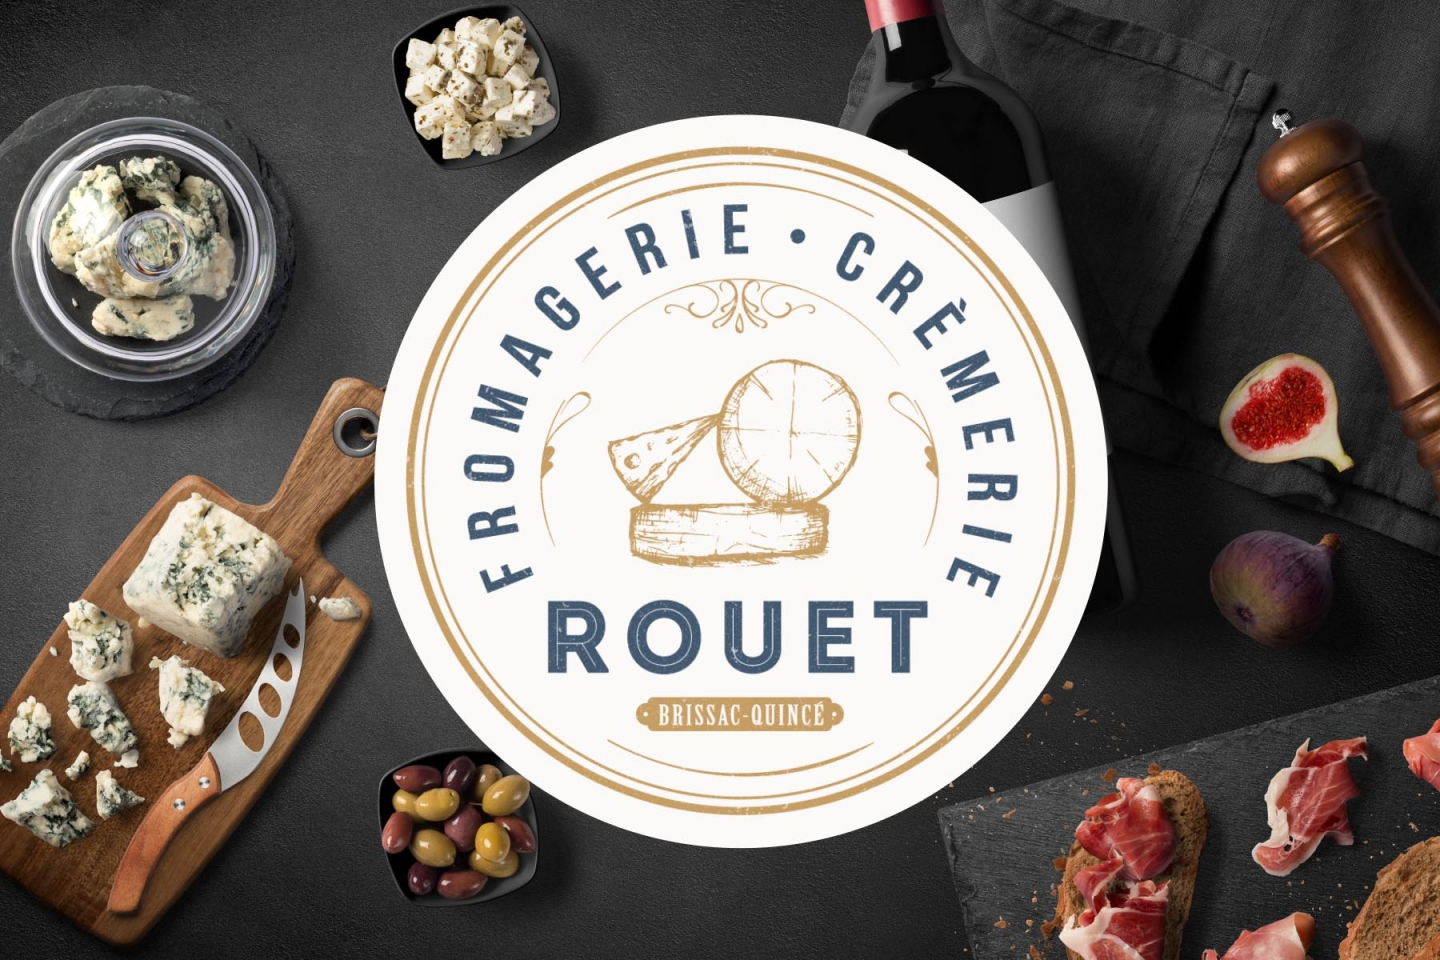 Fromagerie-Crèmerie ROUET